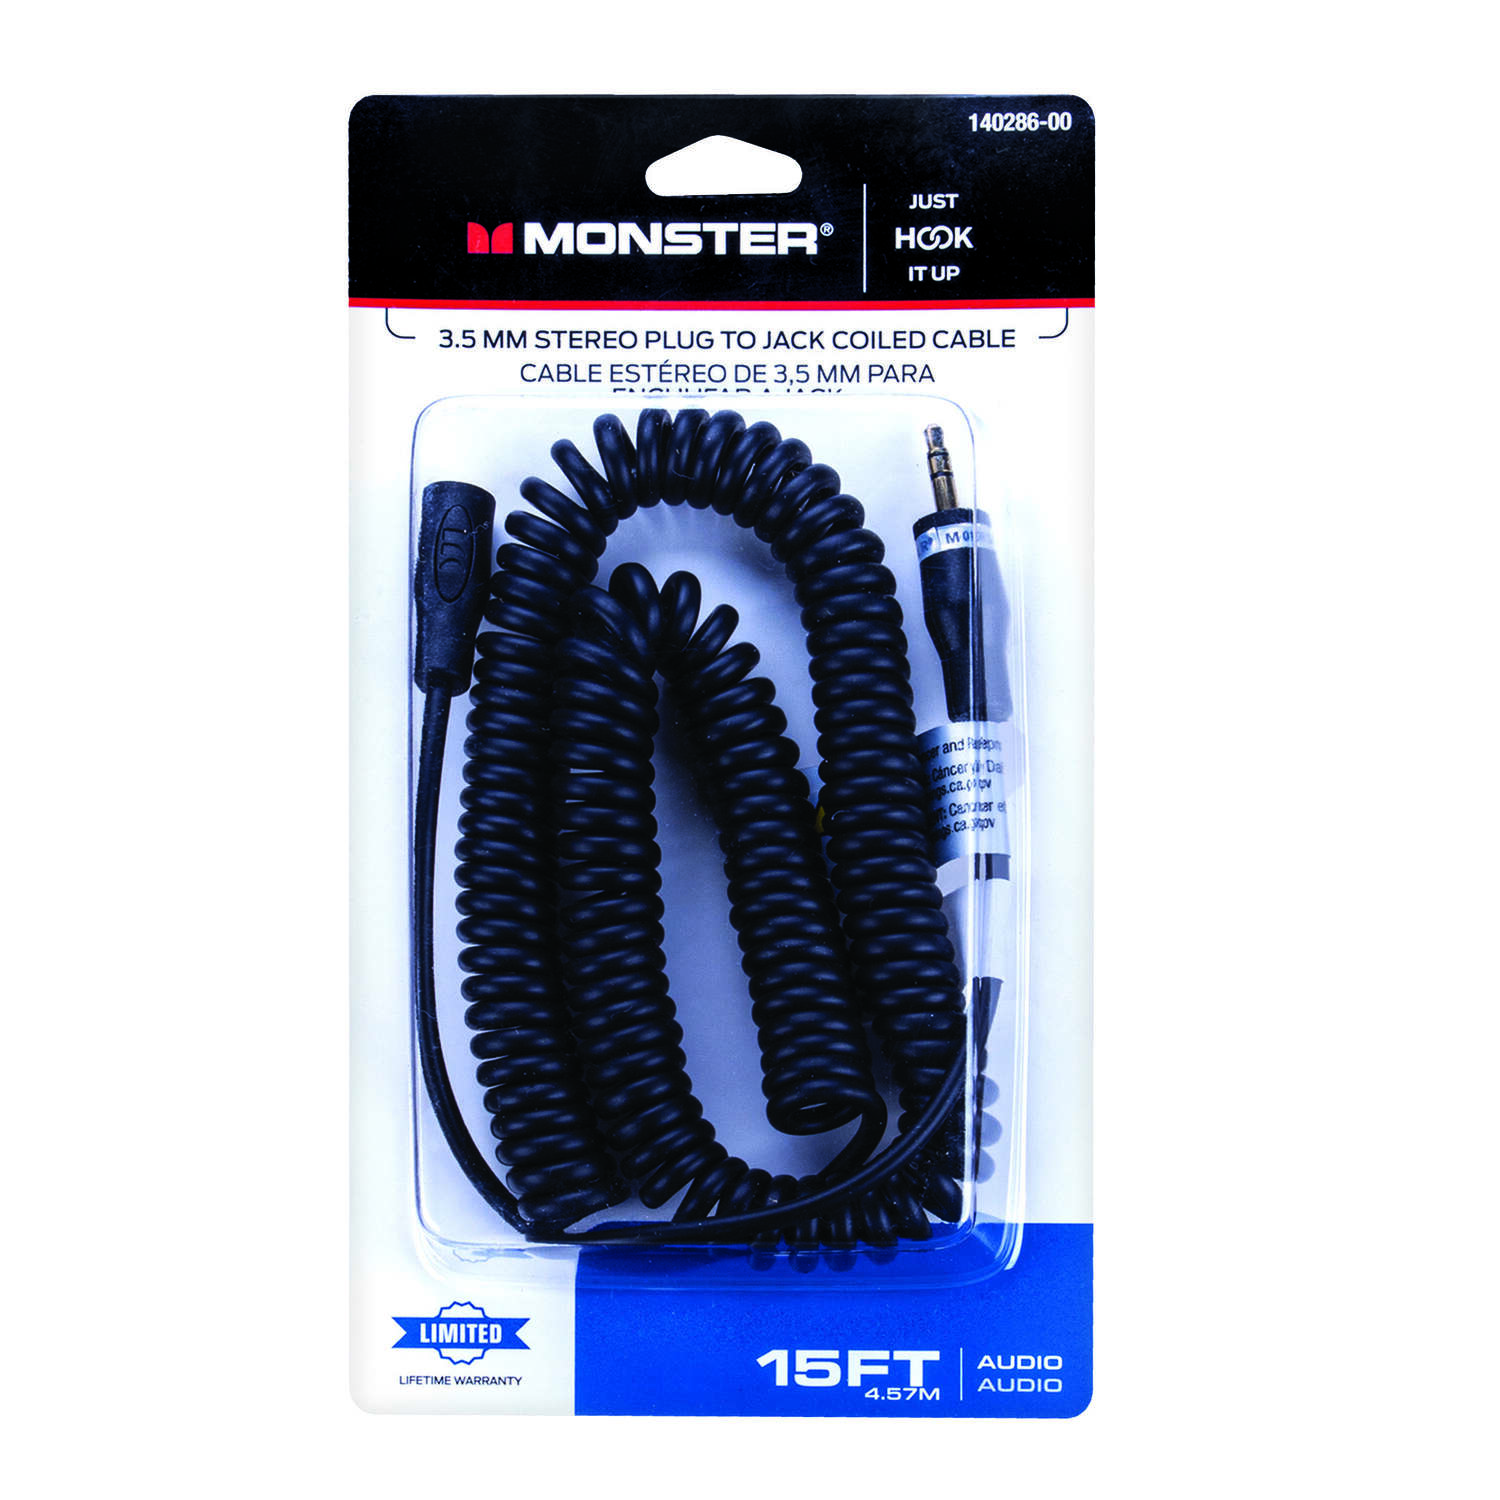 Monster Just Hook It Up Stereo Jack Cable 1 pk